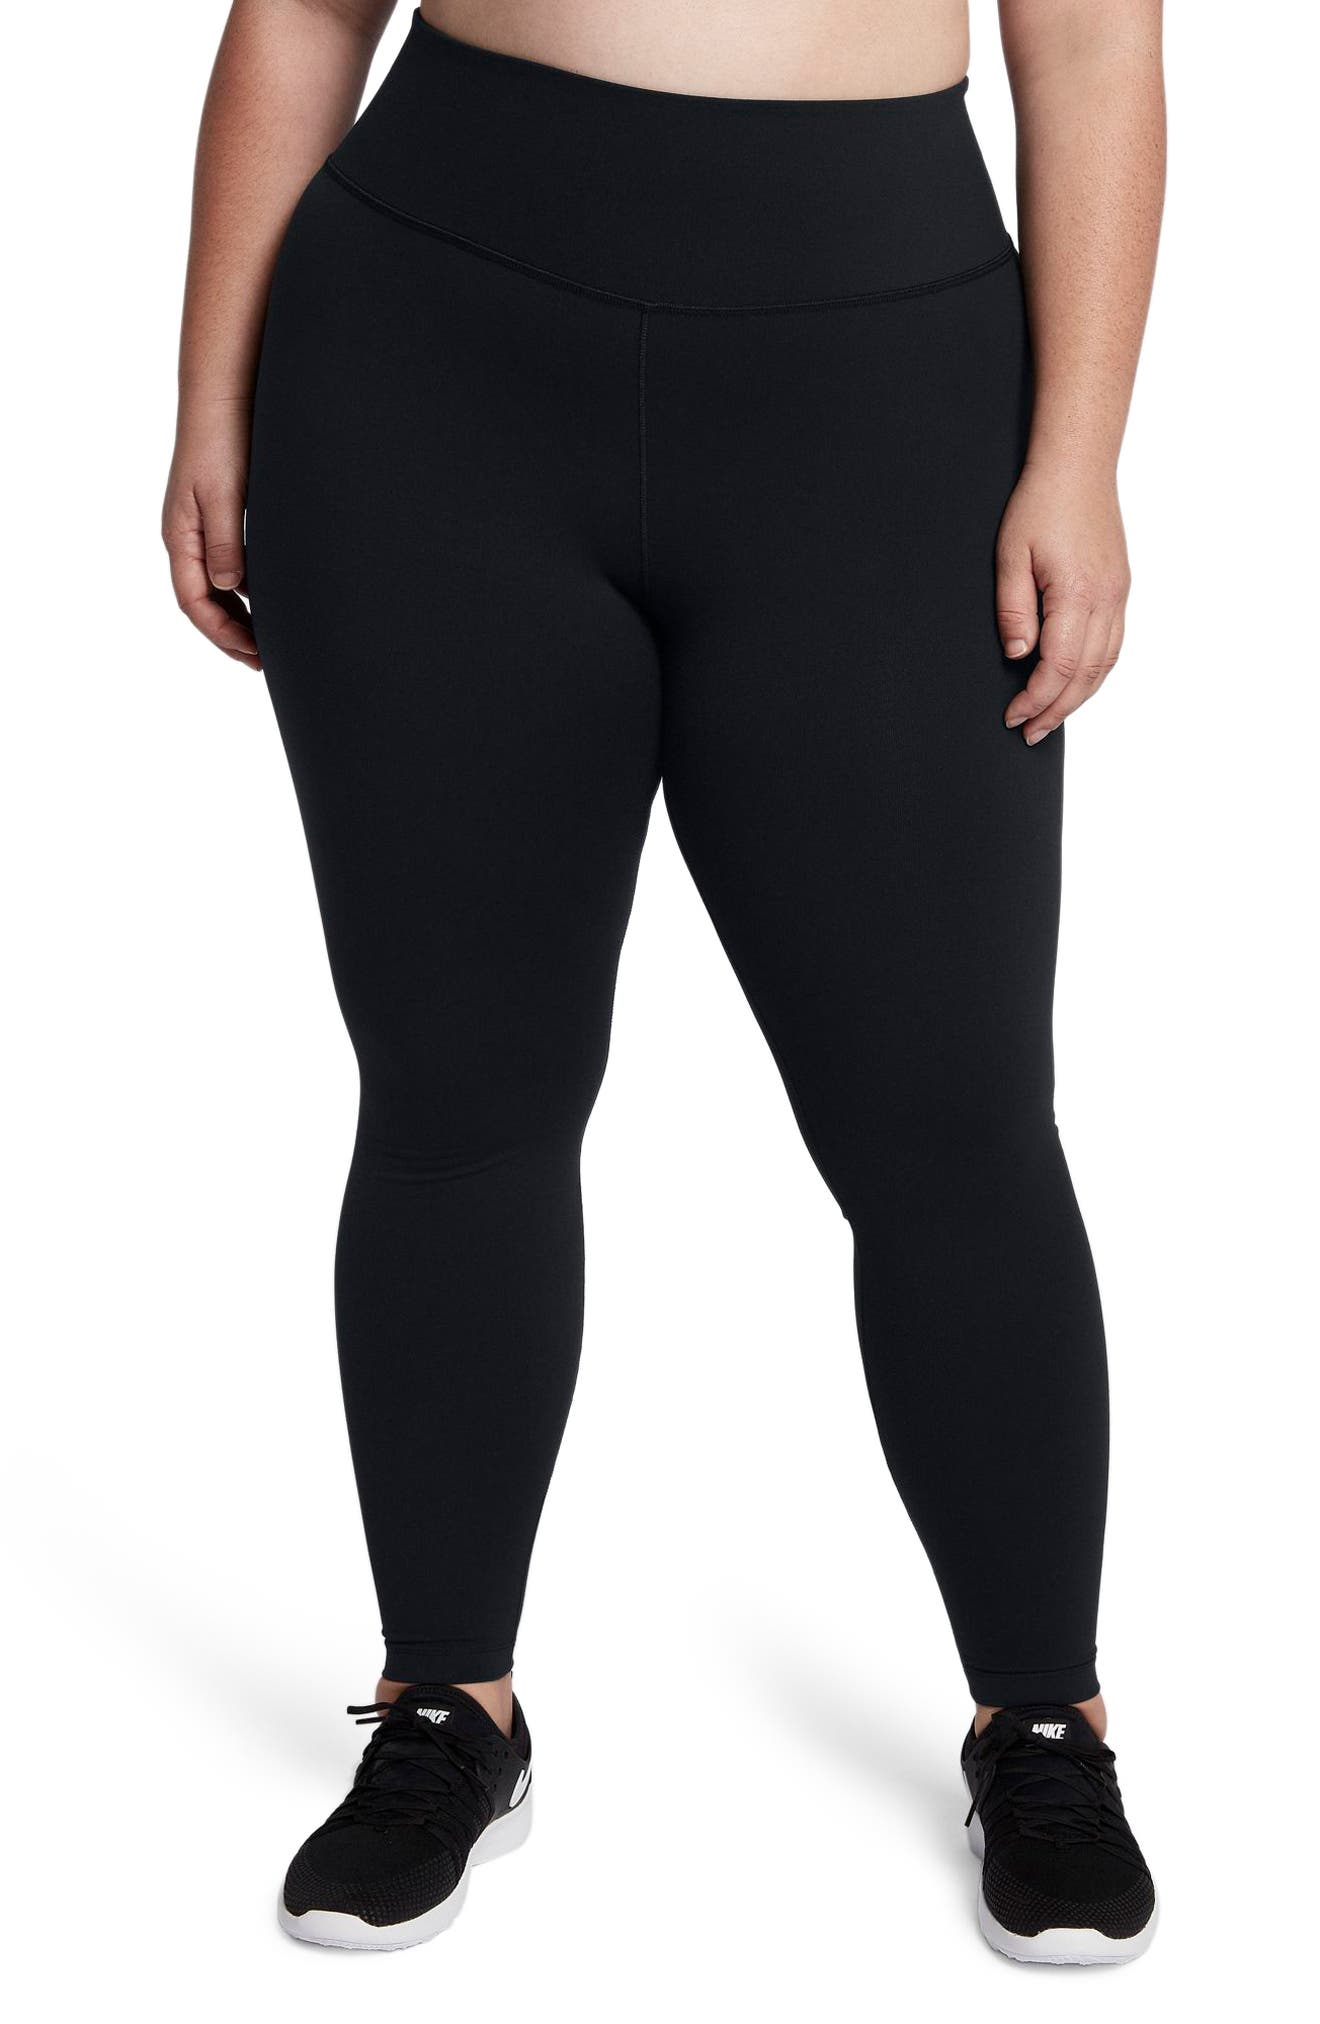 Nike Power Sculpt Training Tights (Plus Size)